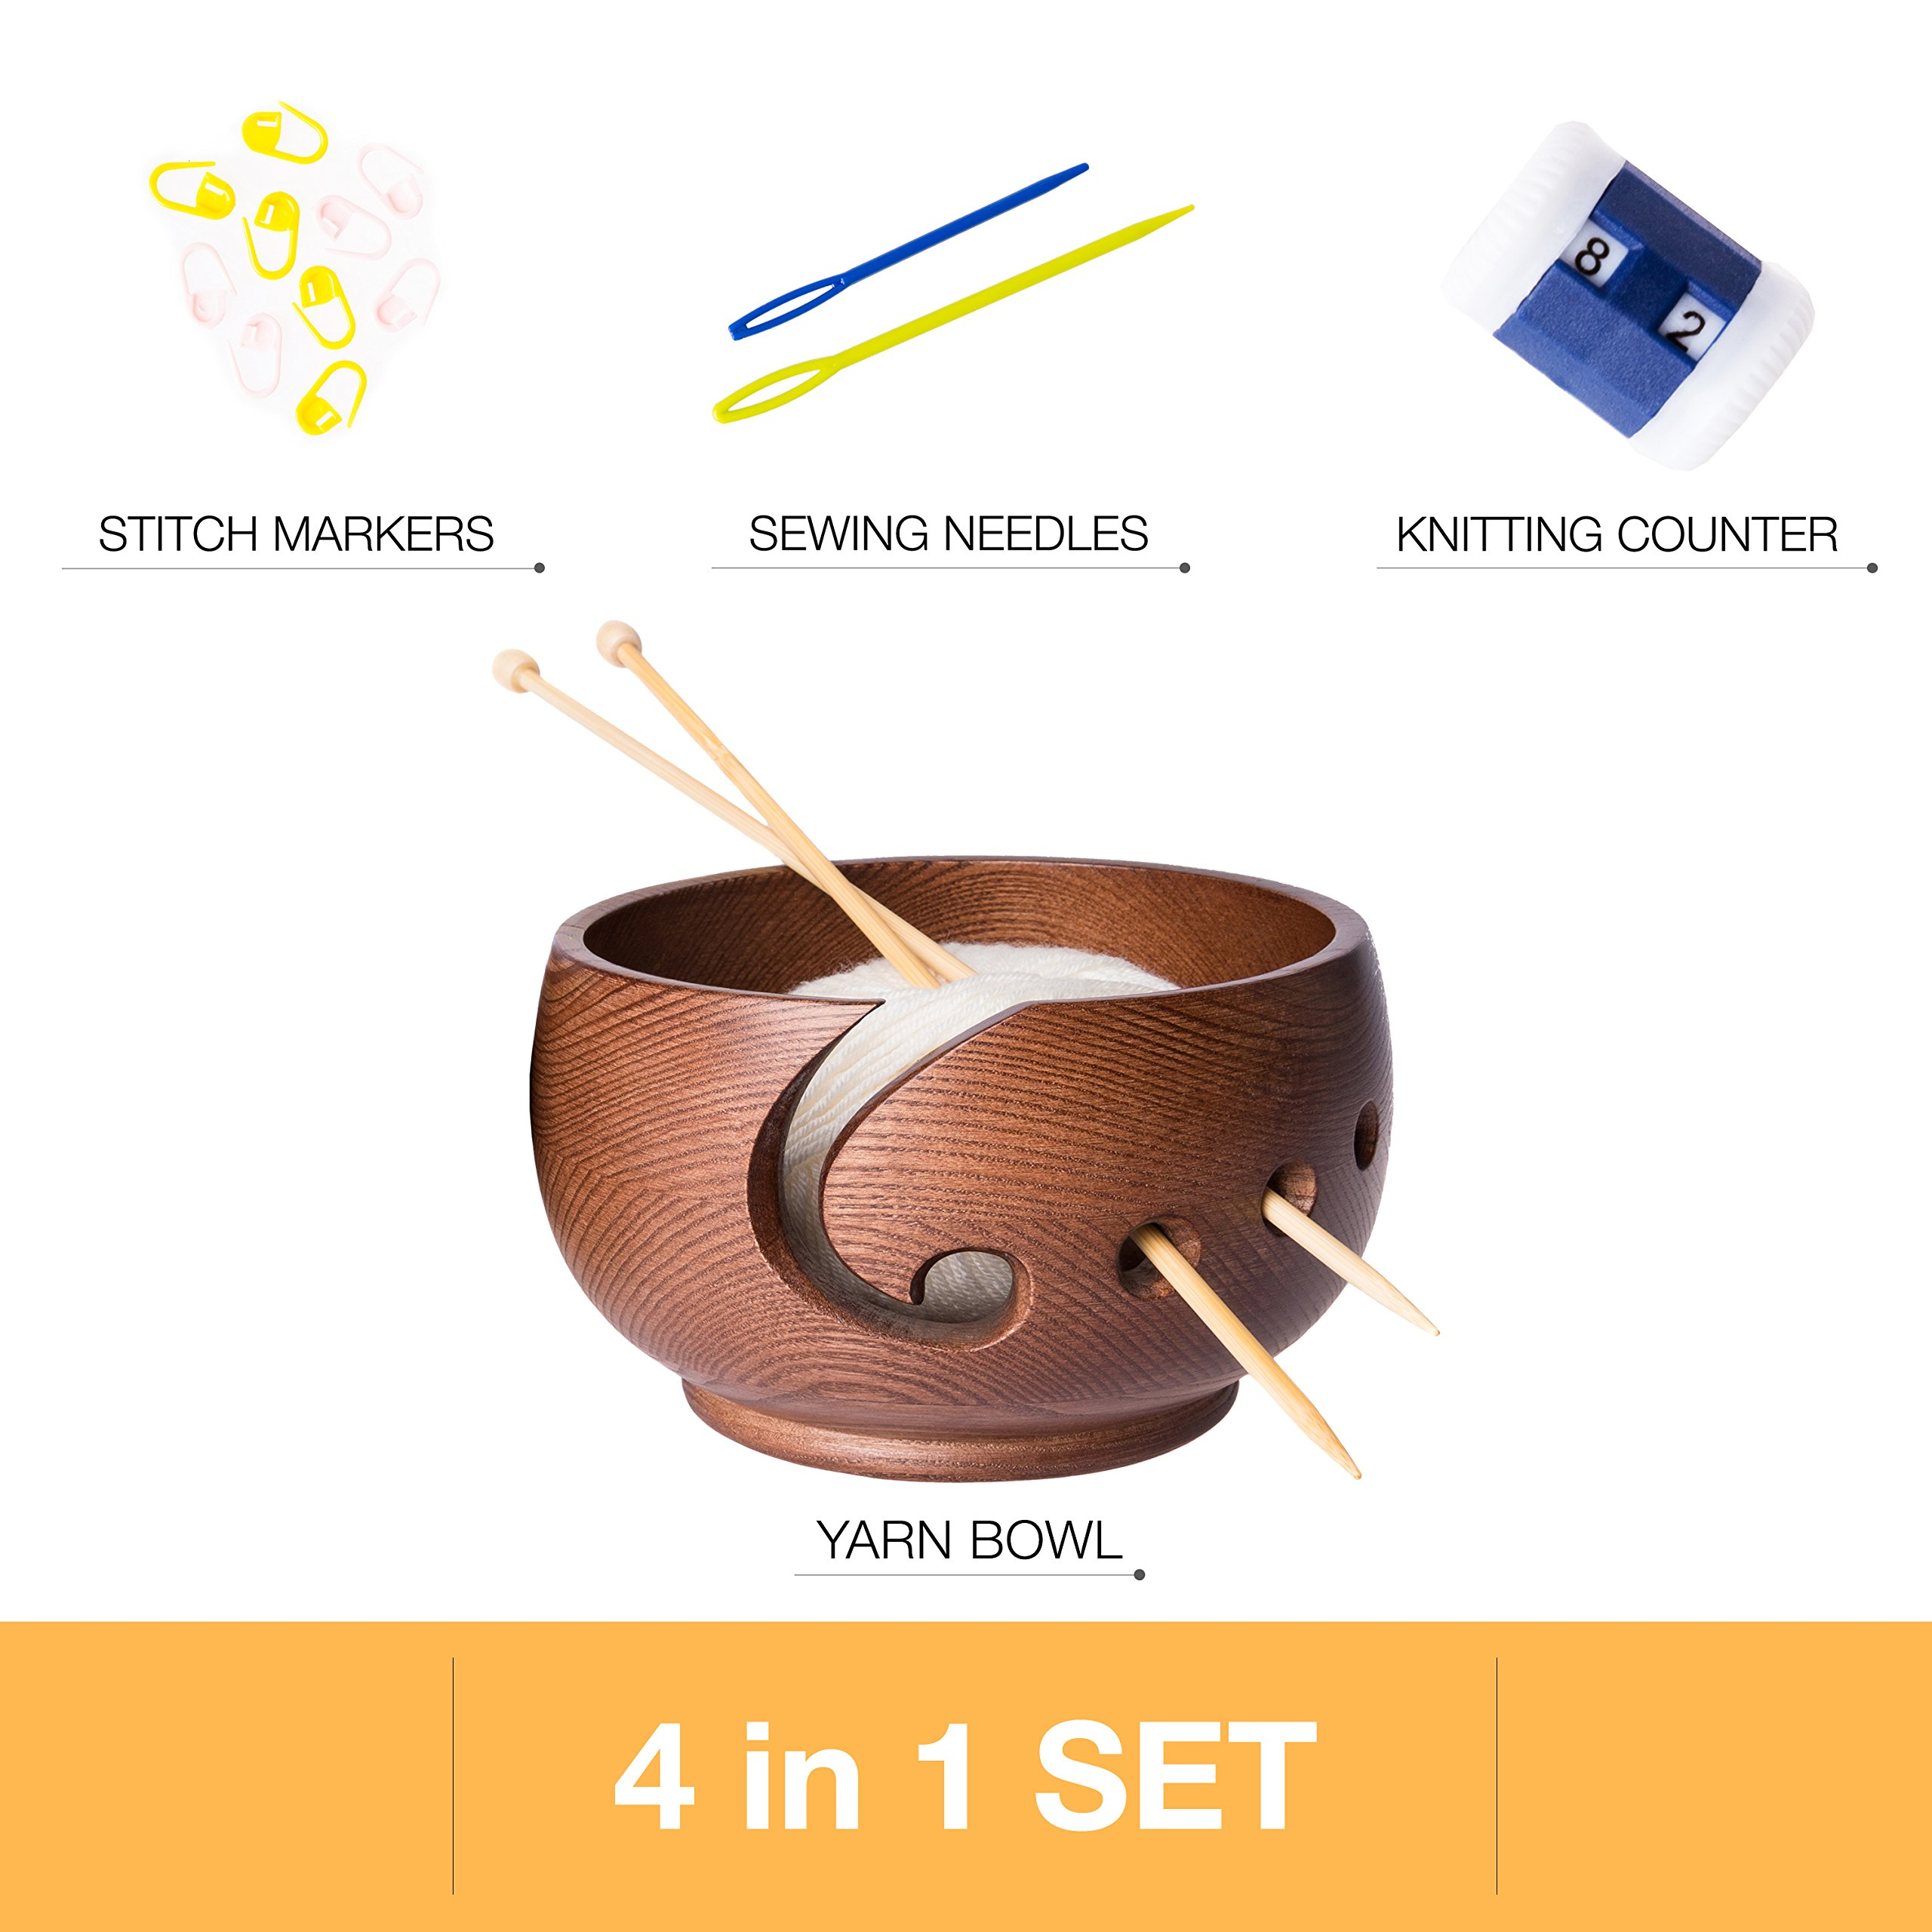 Yarn Bowl for Crochet by Laborwood | Large Size Wooden Knitting Bowl 7''x4'' inch | Handmade Heavy Cat Yarn Bowl Wood | Must Have Wooden Knitting Bowls | Set of 3 Gifts Bonus | Best Gift Ever (Chestnut) by Laborwood (Image #5)